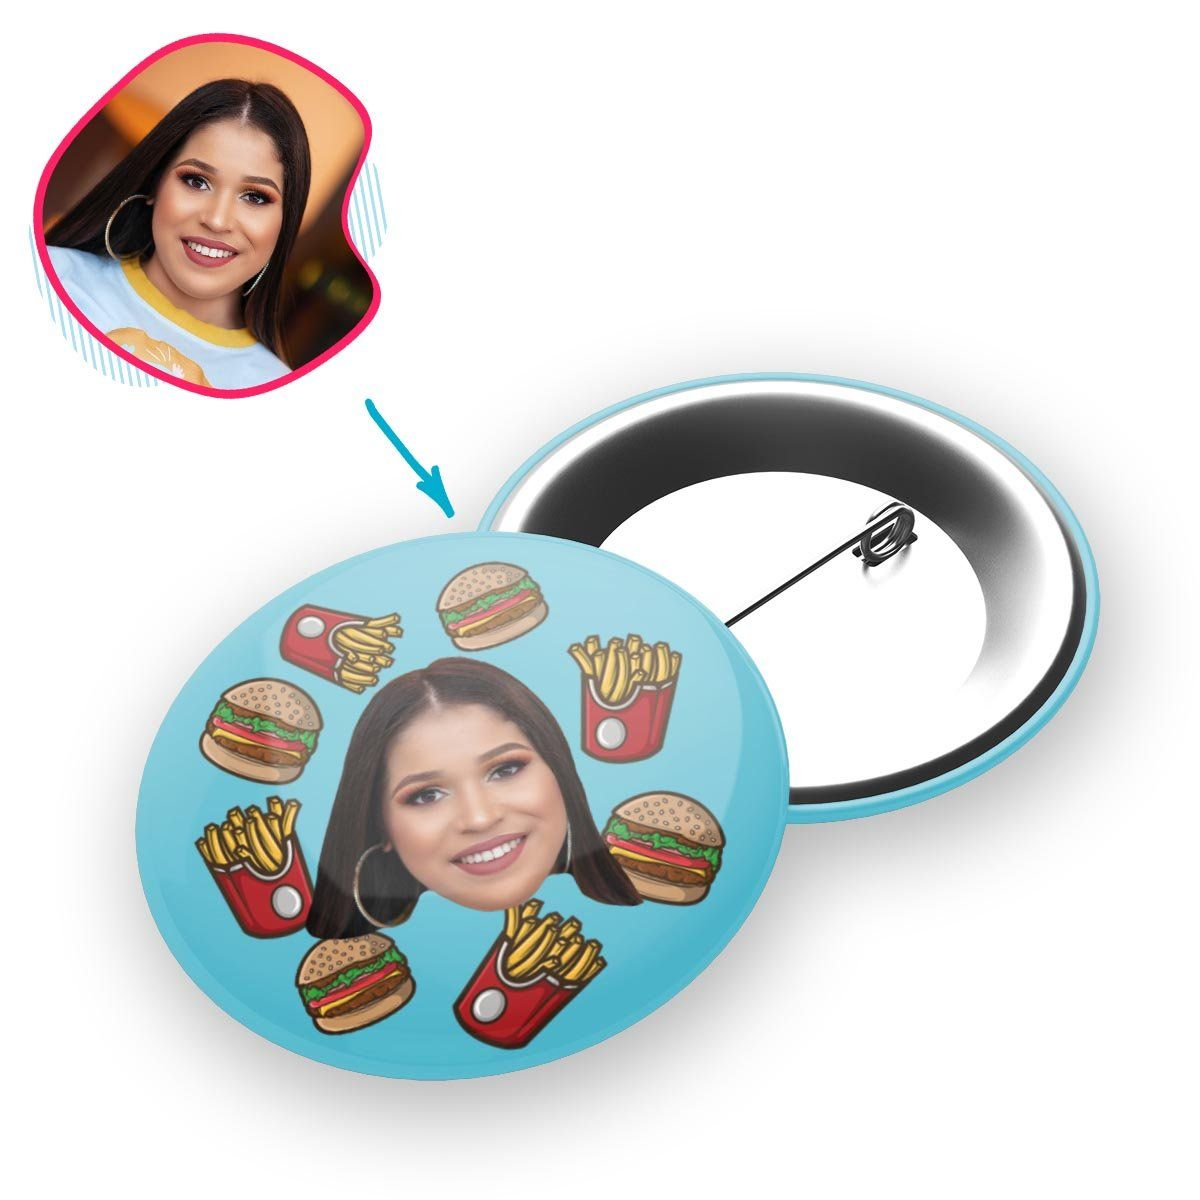 blue Fastfood pin personalized with photo of face printed on it